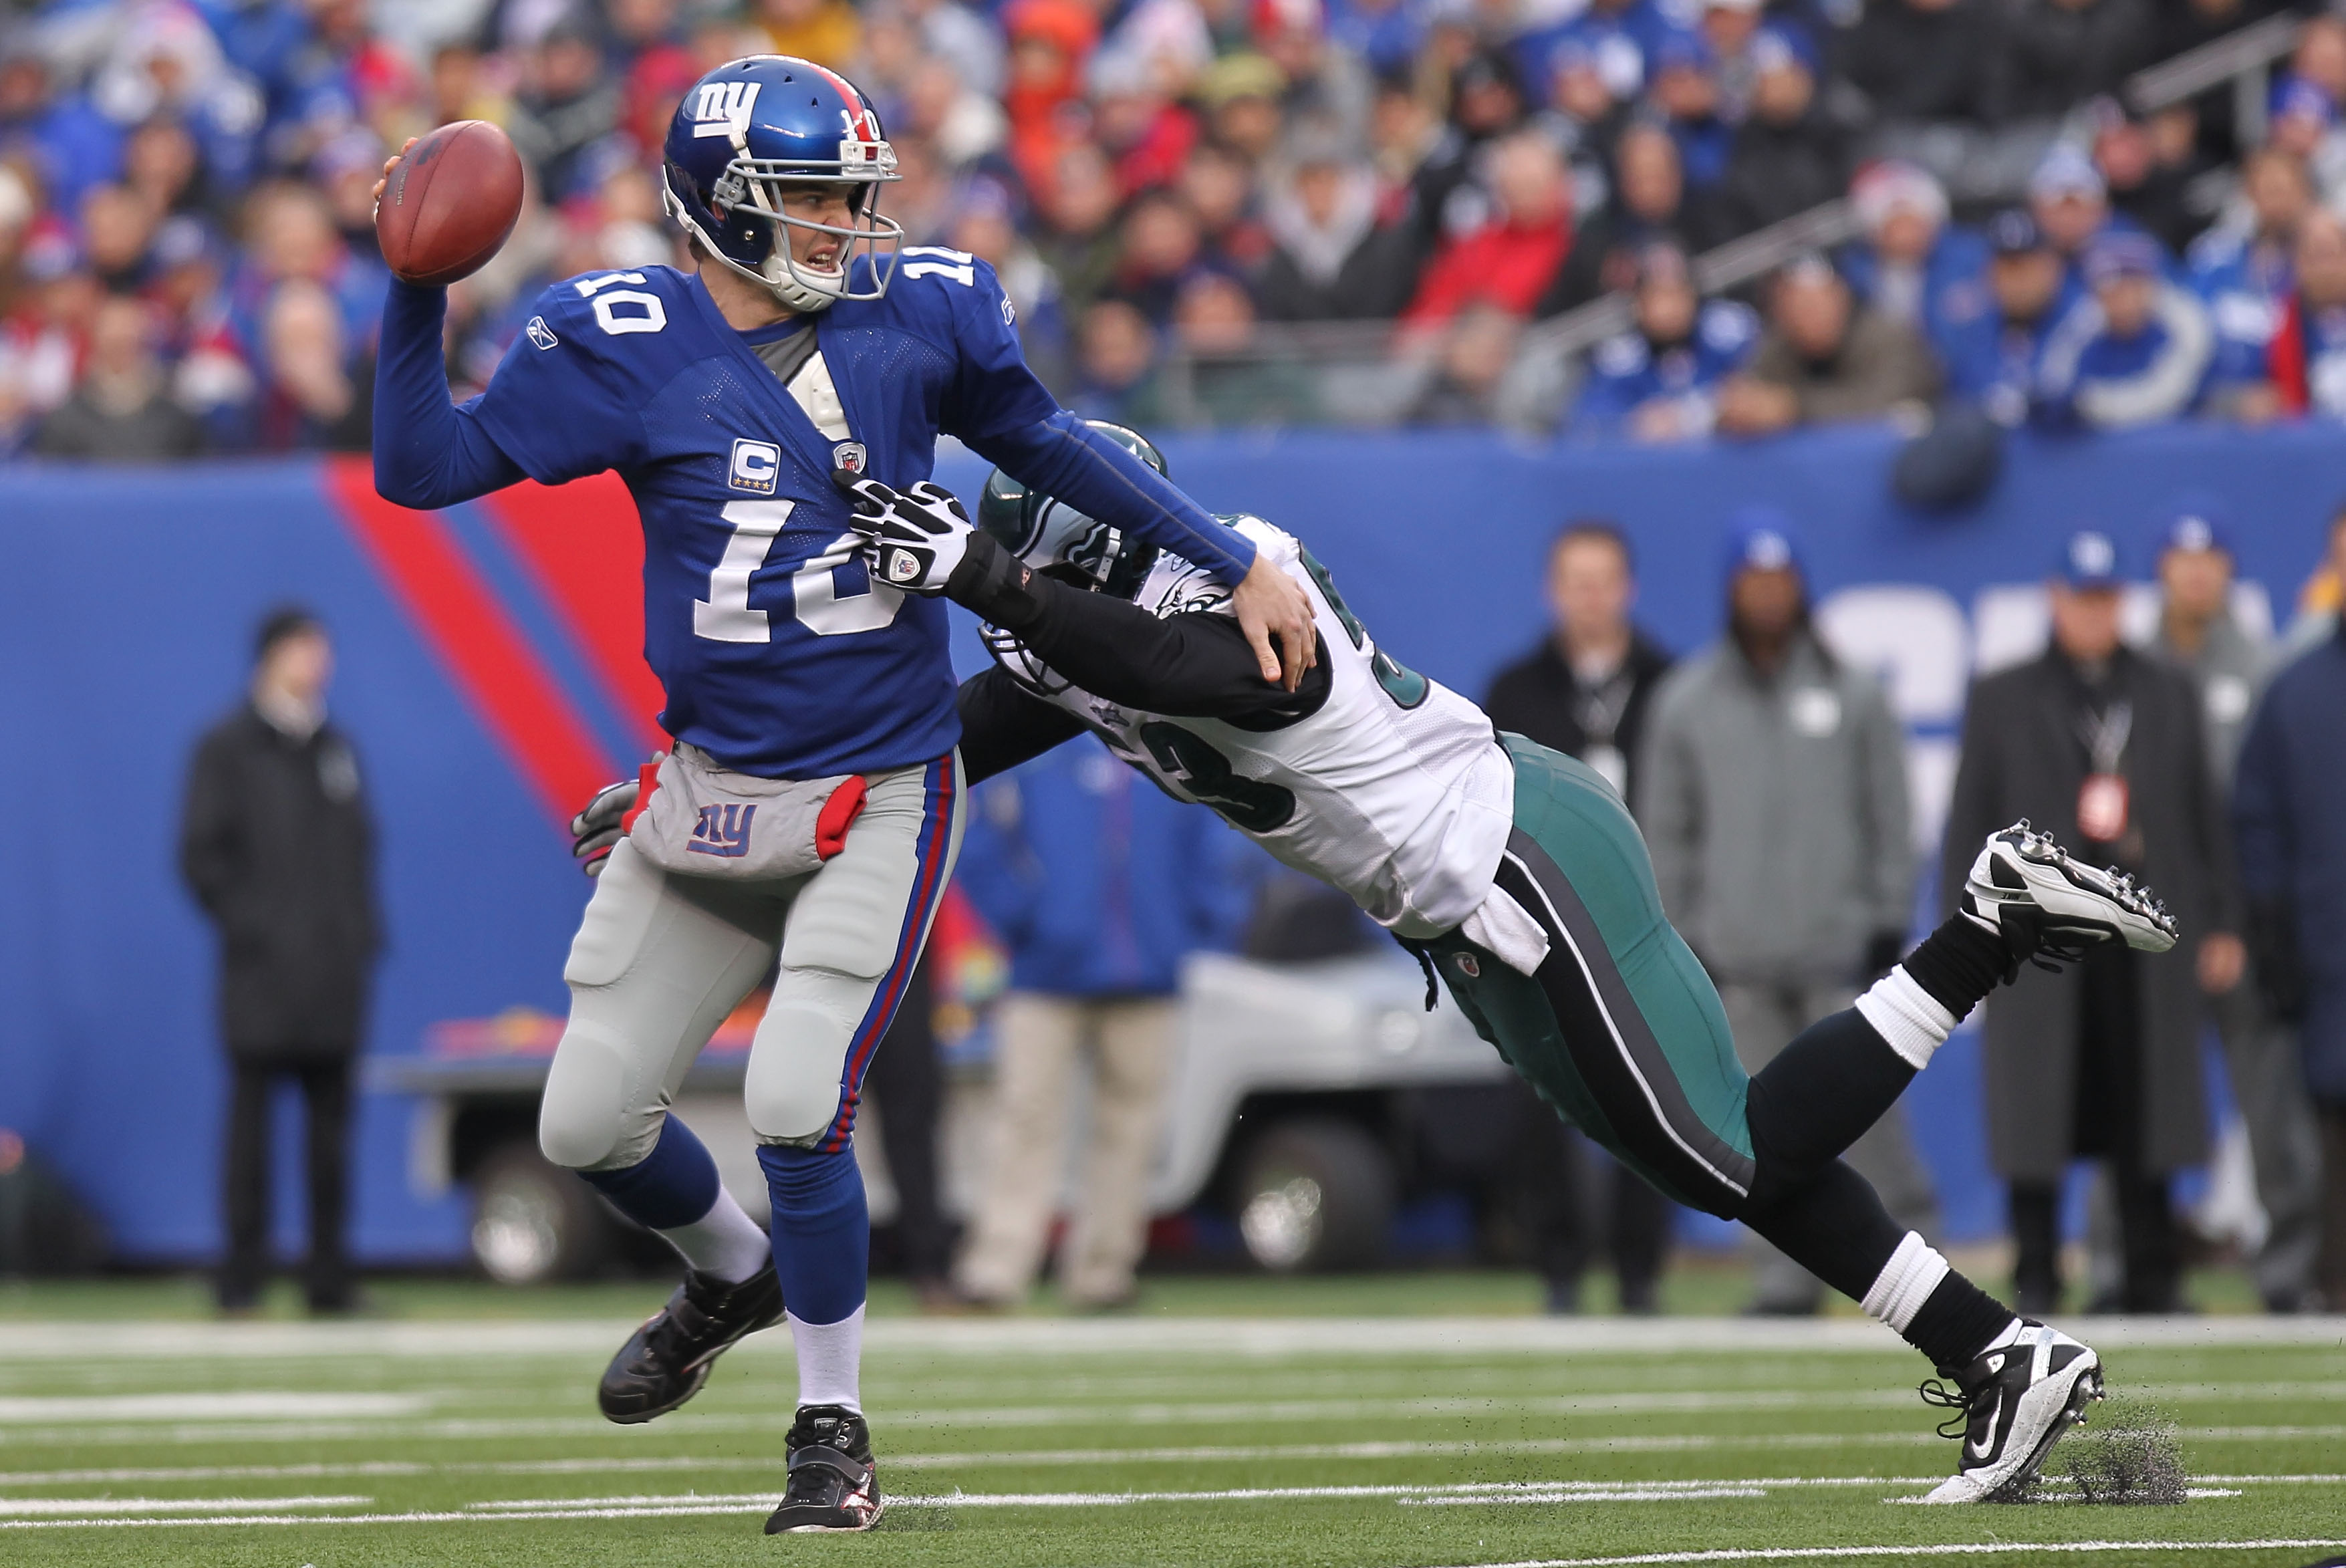 EAST RUTHERFORD, NJ - DECEMBER 19:  Eli Manning #10 of the New York Giants is sacked by Moise Fokou #53 of the Philadelphia Eagles at New Meadowlands Stadium on December 19, 2010 in East Rutherford, New Jersey.  (Photo by Nick Laham/Getty Images)